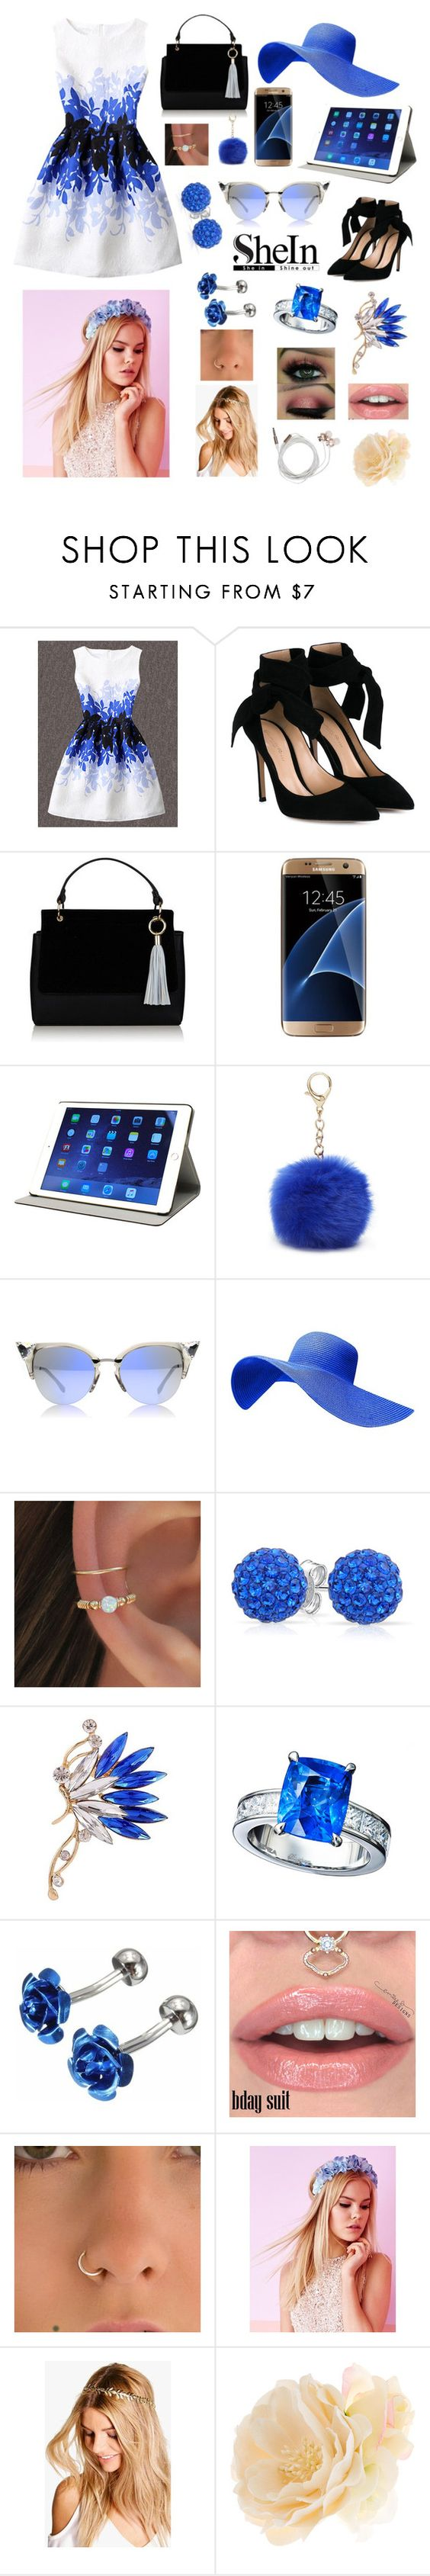 """""""Blue And Black"""" by kaileewhaley13 ❤ liked on Polyvore featuring WithChic, Gianvito Rossi, Samsung, M-Edge, Nine West, Fendi, Bling Jewelry, Lipsy, Boohoo and Accessorize"""